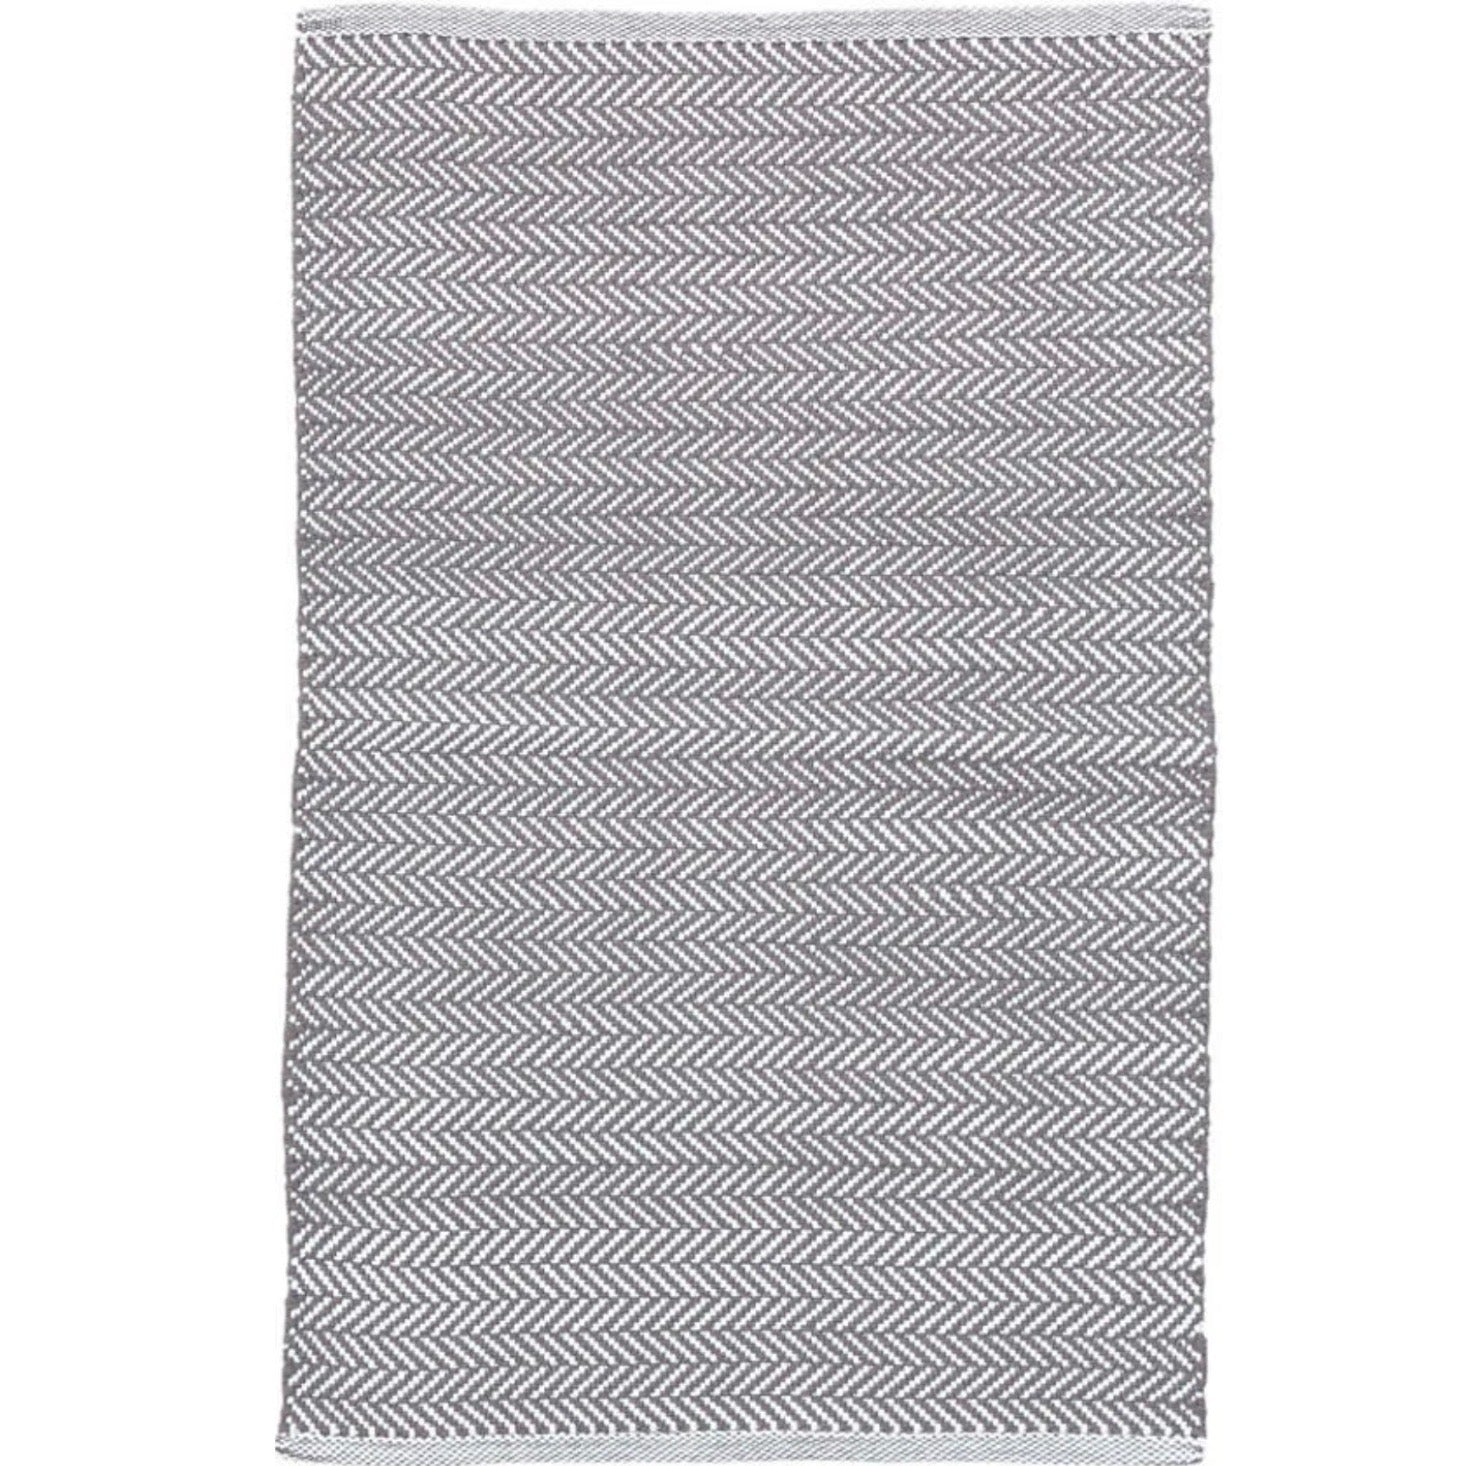 Herringbone Indoor Outdoor Rug - Shale